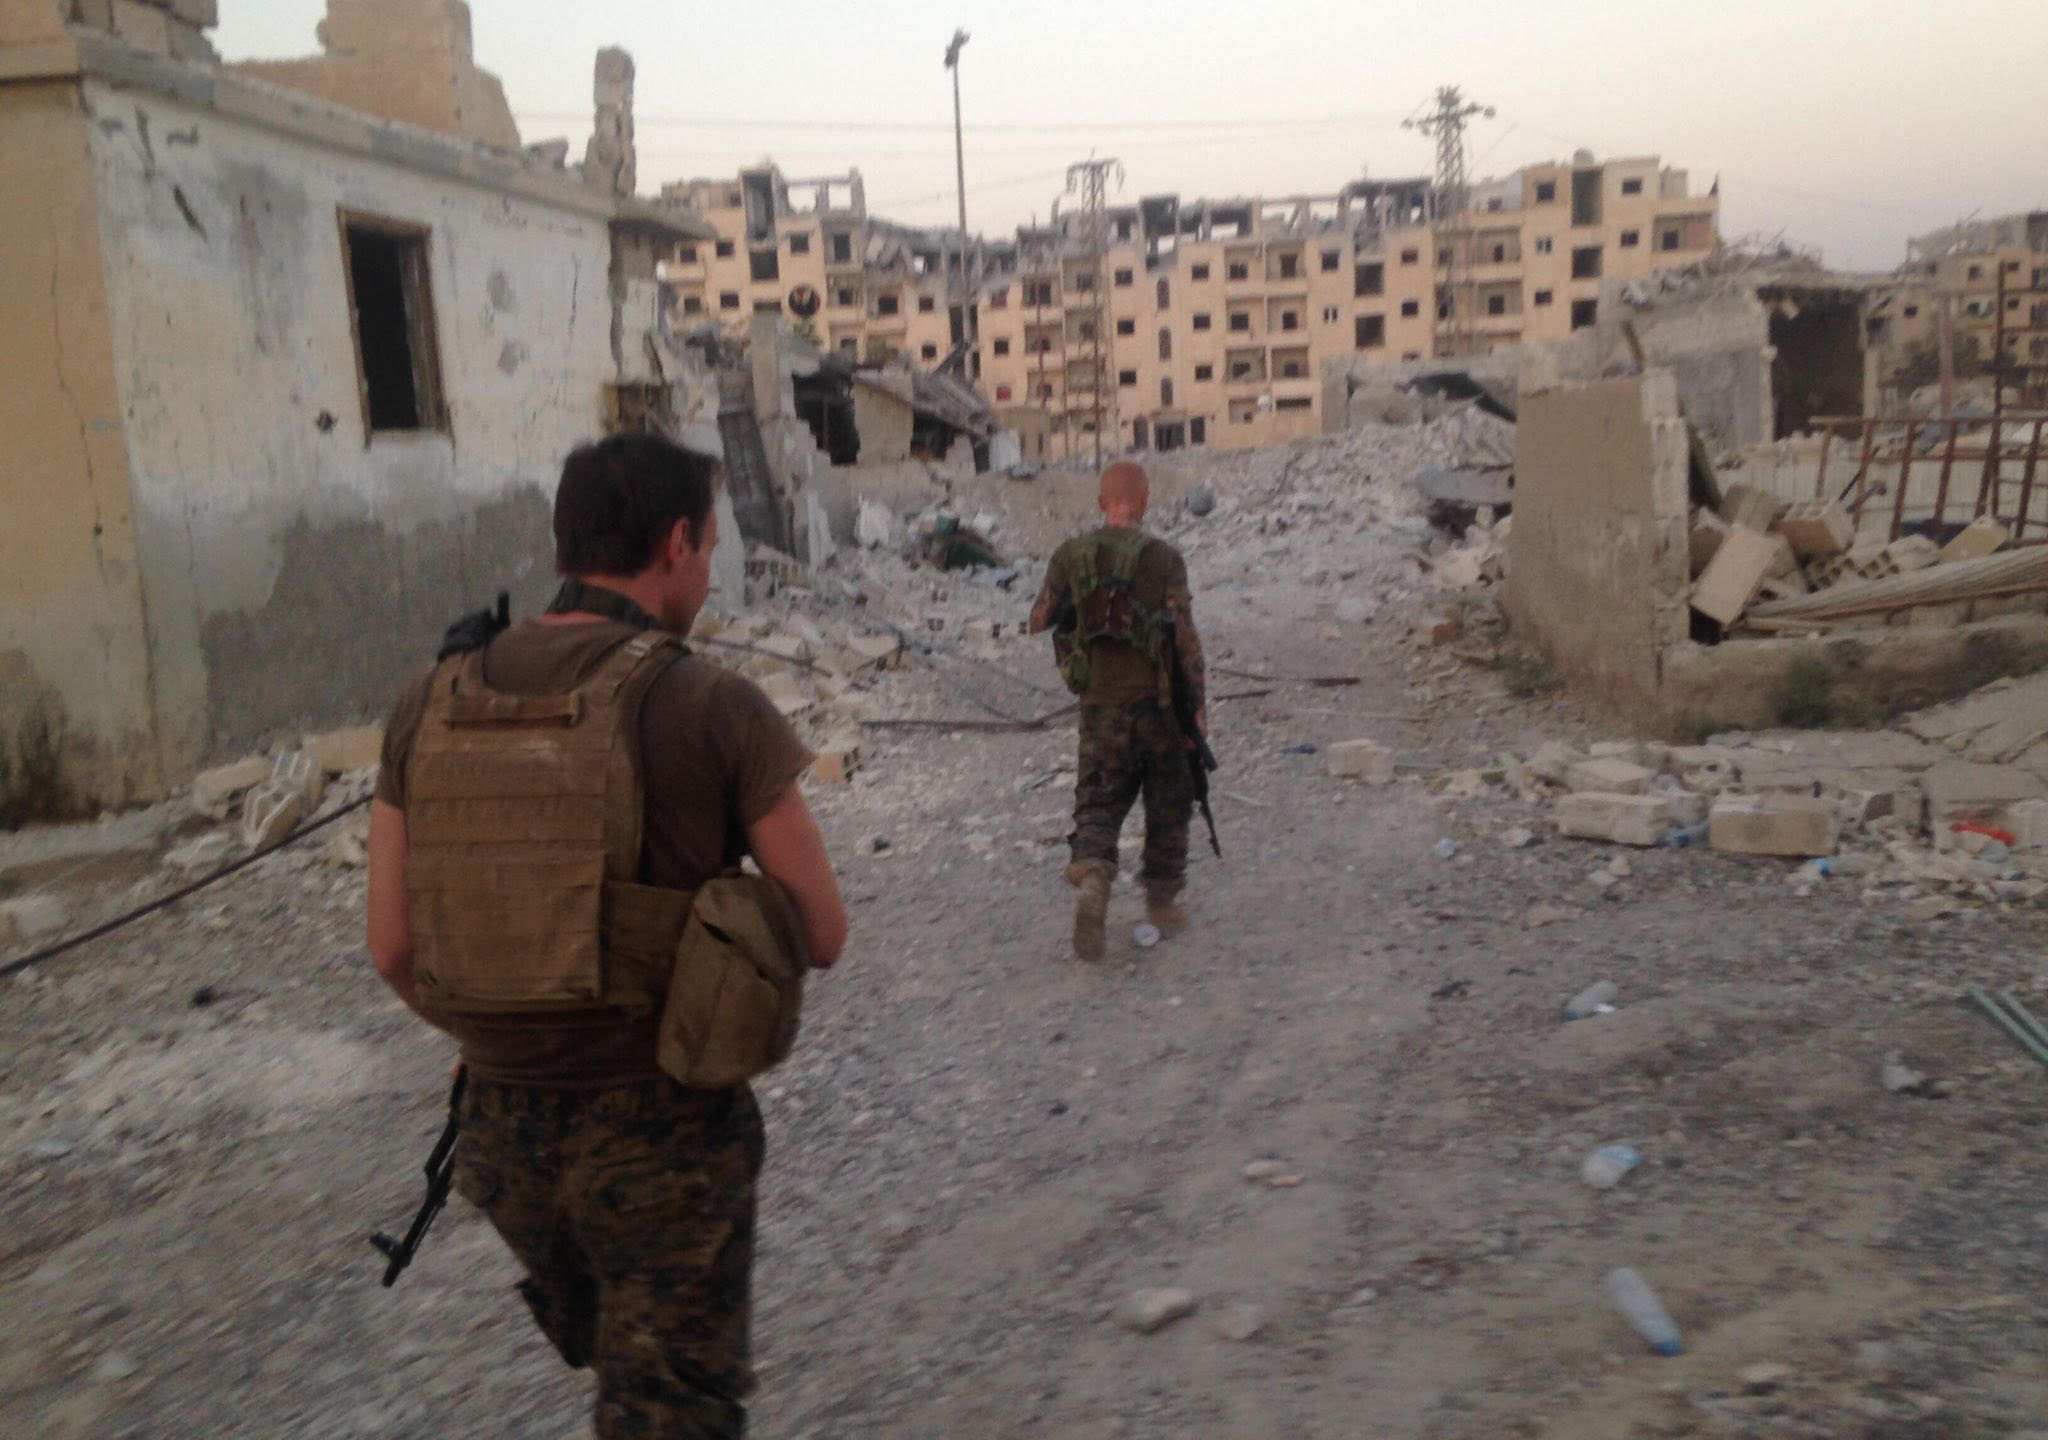 Kevin Howard and Taylor patrolled the streets of Raqqa. In the battle for the city, Taylor was a sniper.